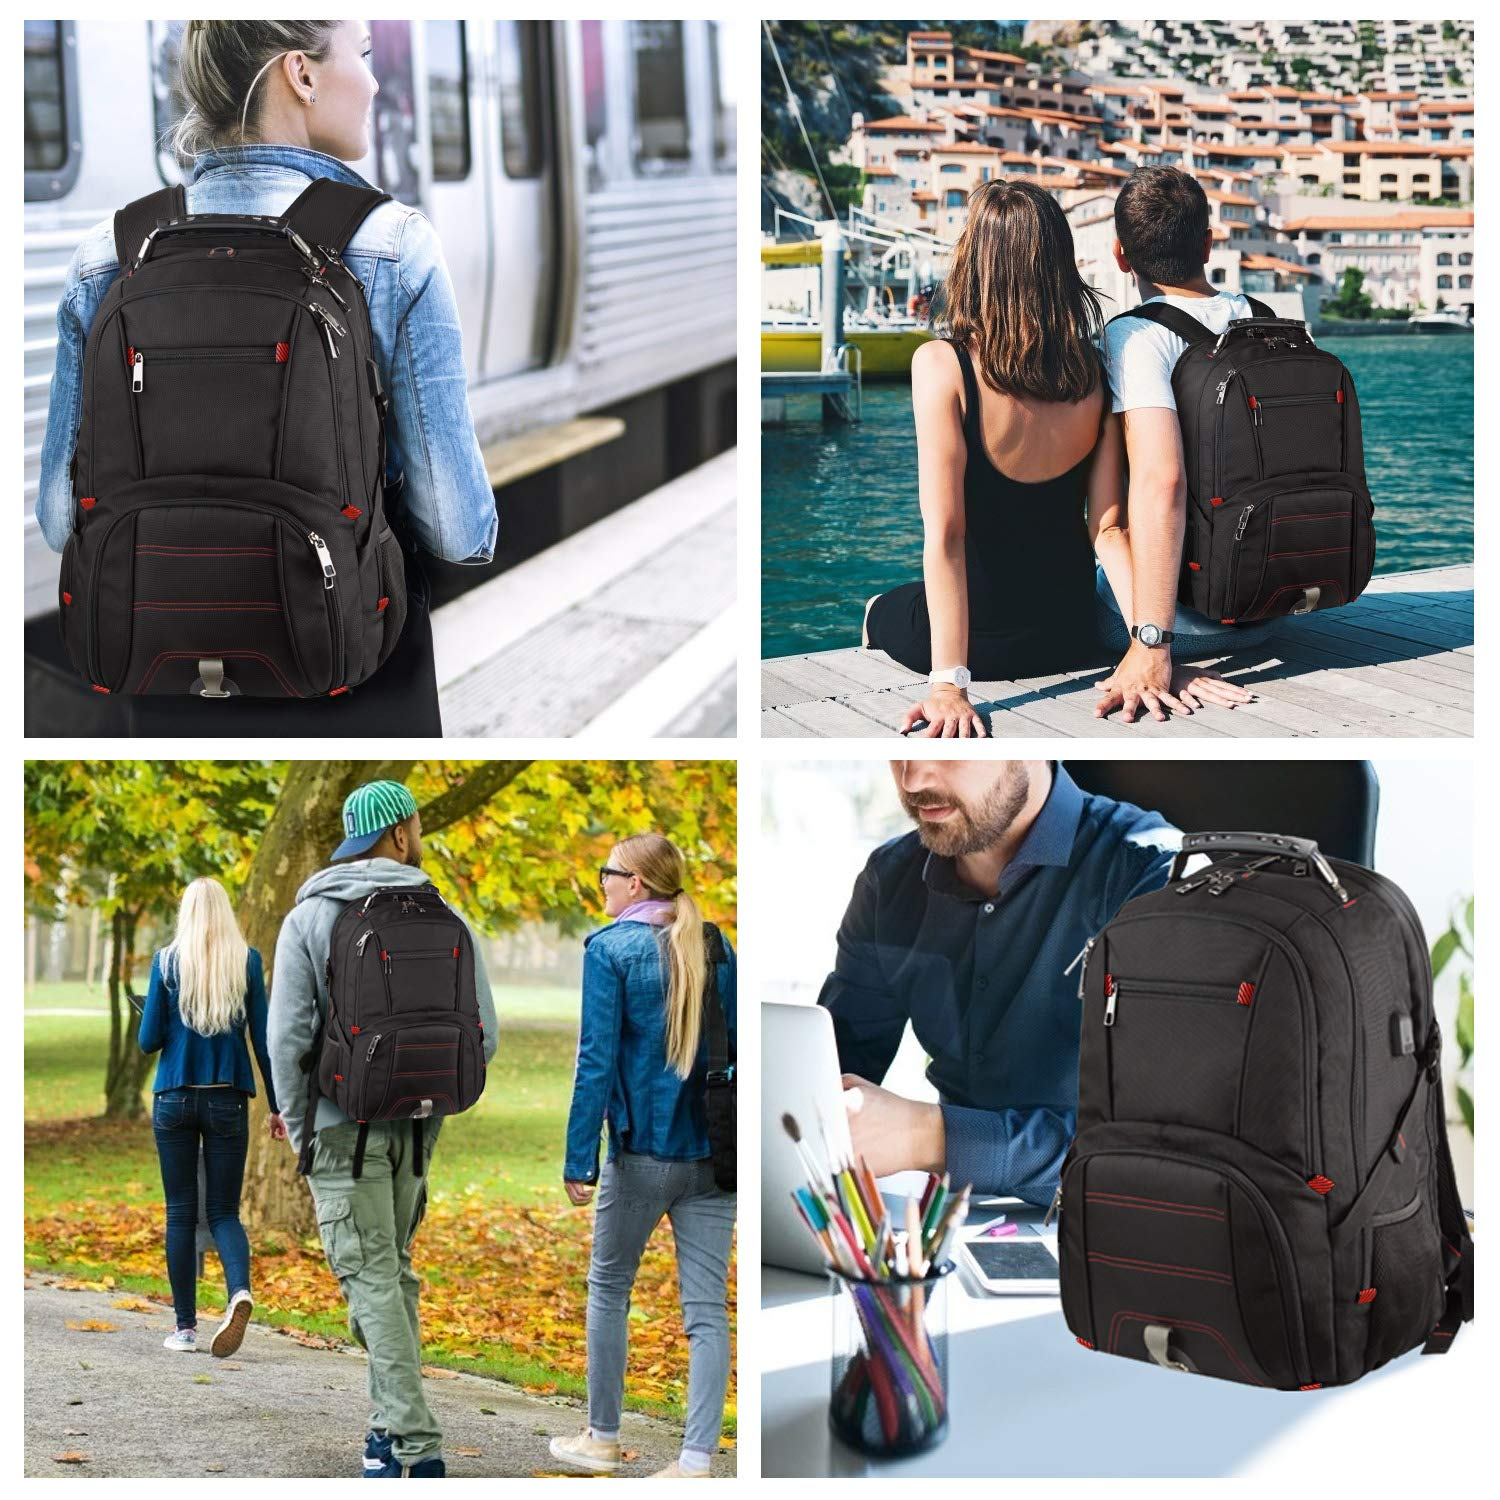 Extra Large Backpack,Travel Laptop Backpack TSA Friendly Durable Computer Backpack with USB Charging Port for Men&Women,Water-Resistant Big Business College School Bookbag Fits 17 Inch Laptop&Notebook by Tinvic (Image #7)